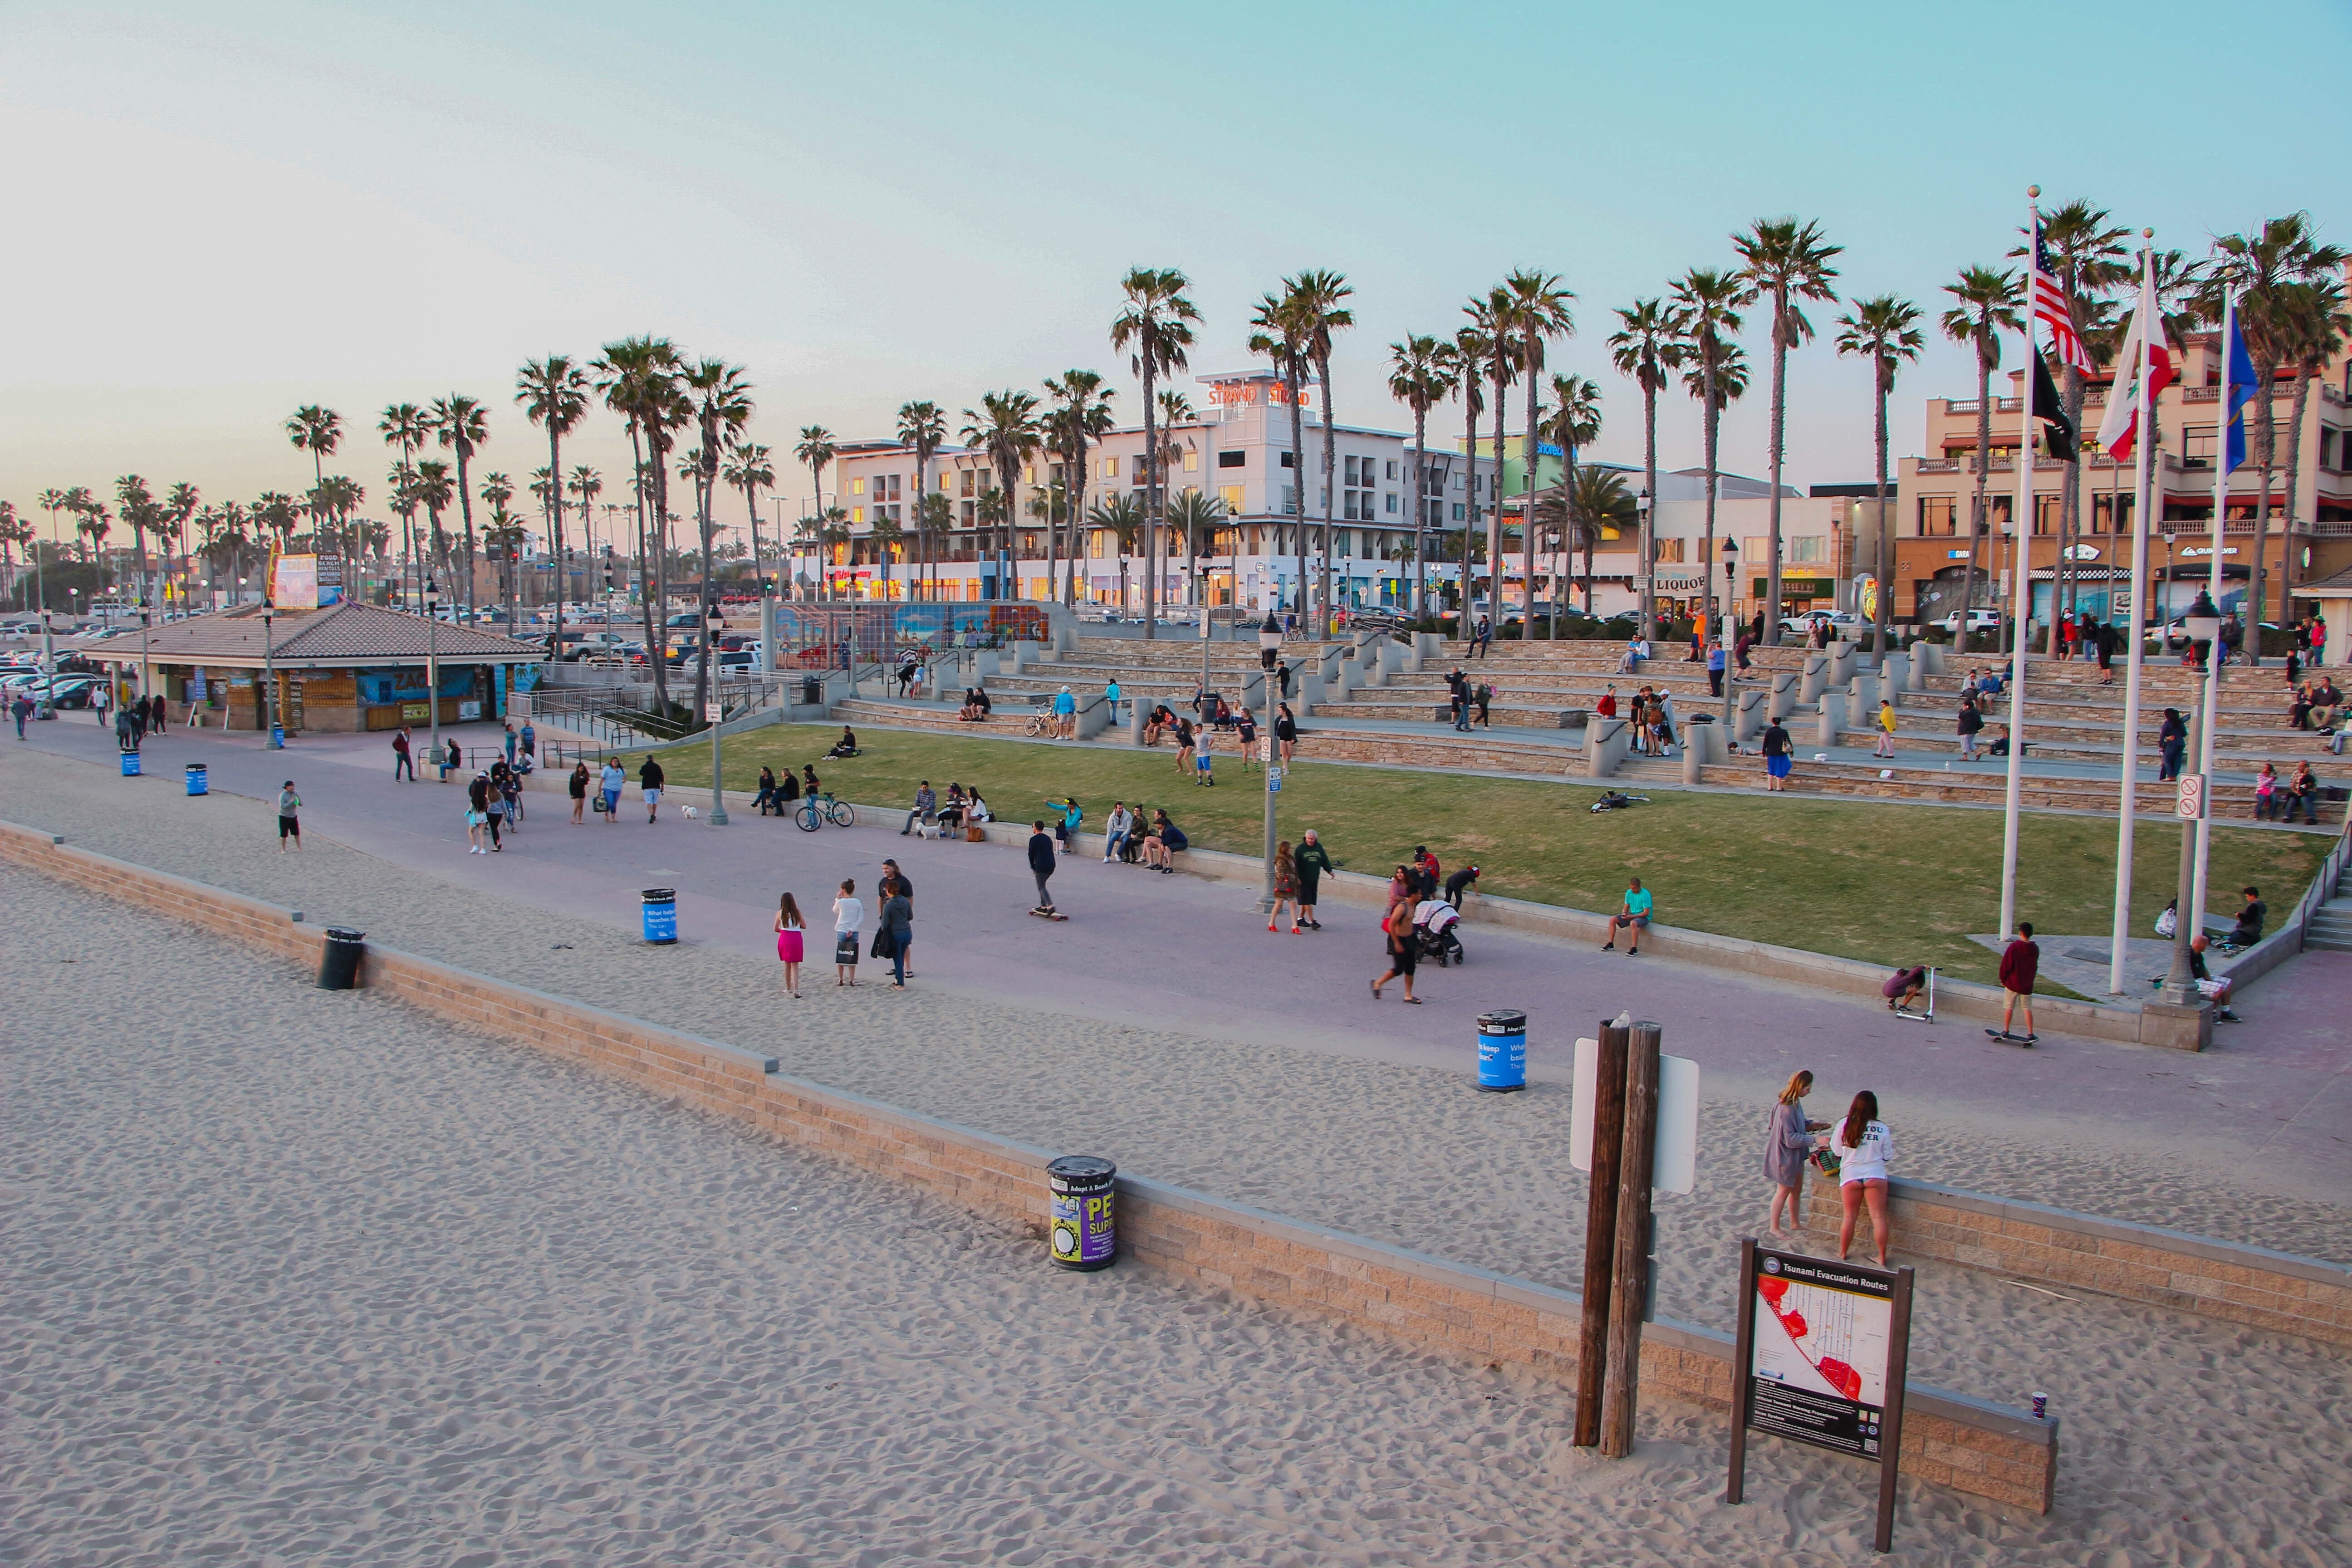 Western Center housing legislation paves the way for state lawsuit against the City of Huntington Beach